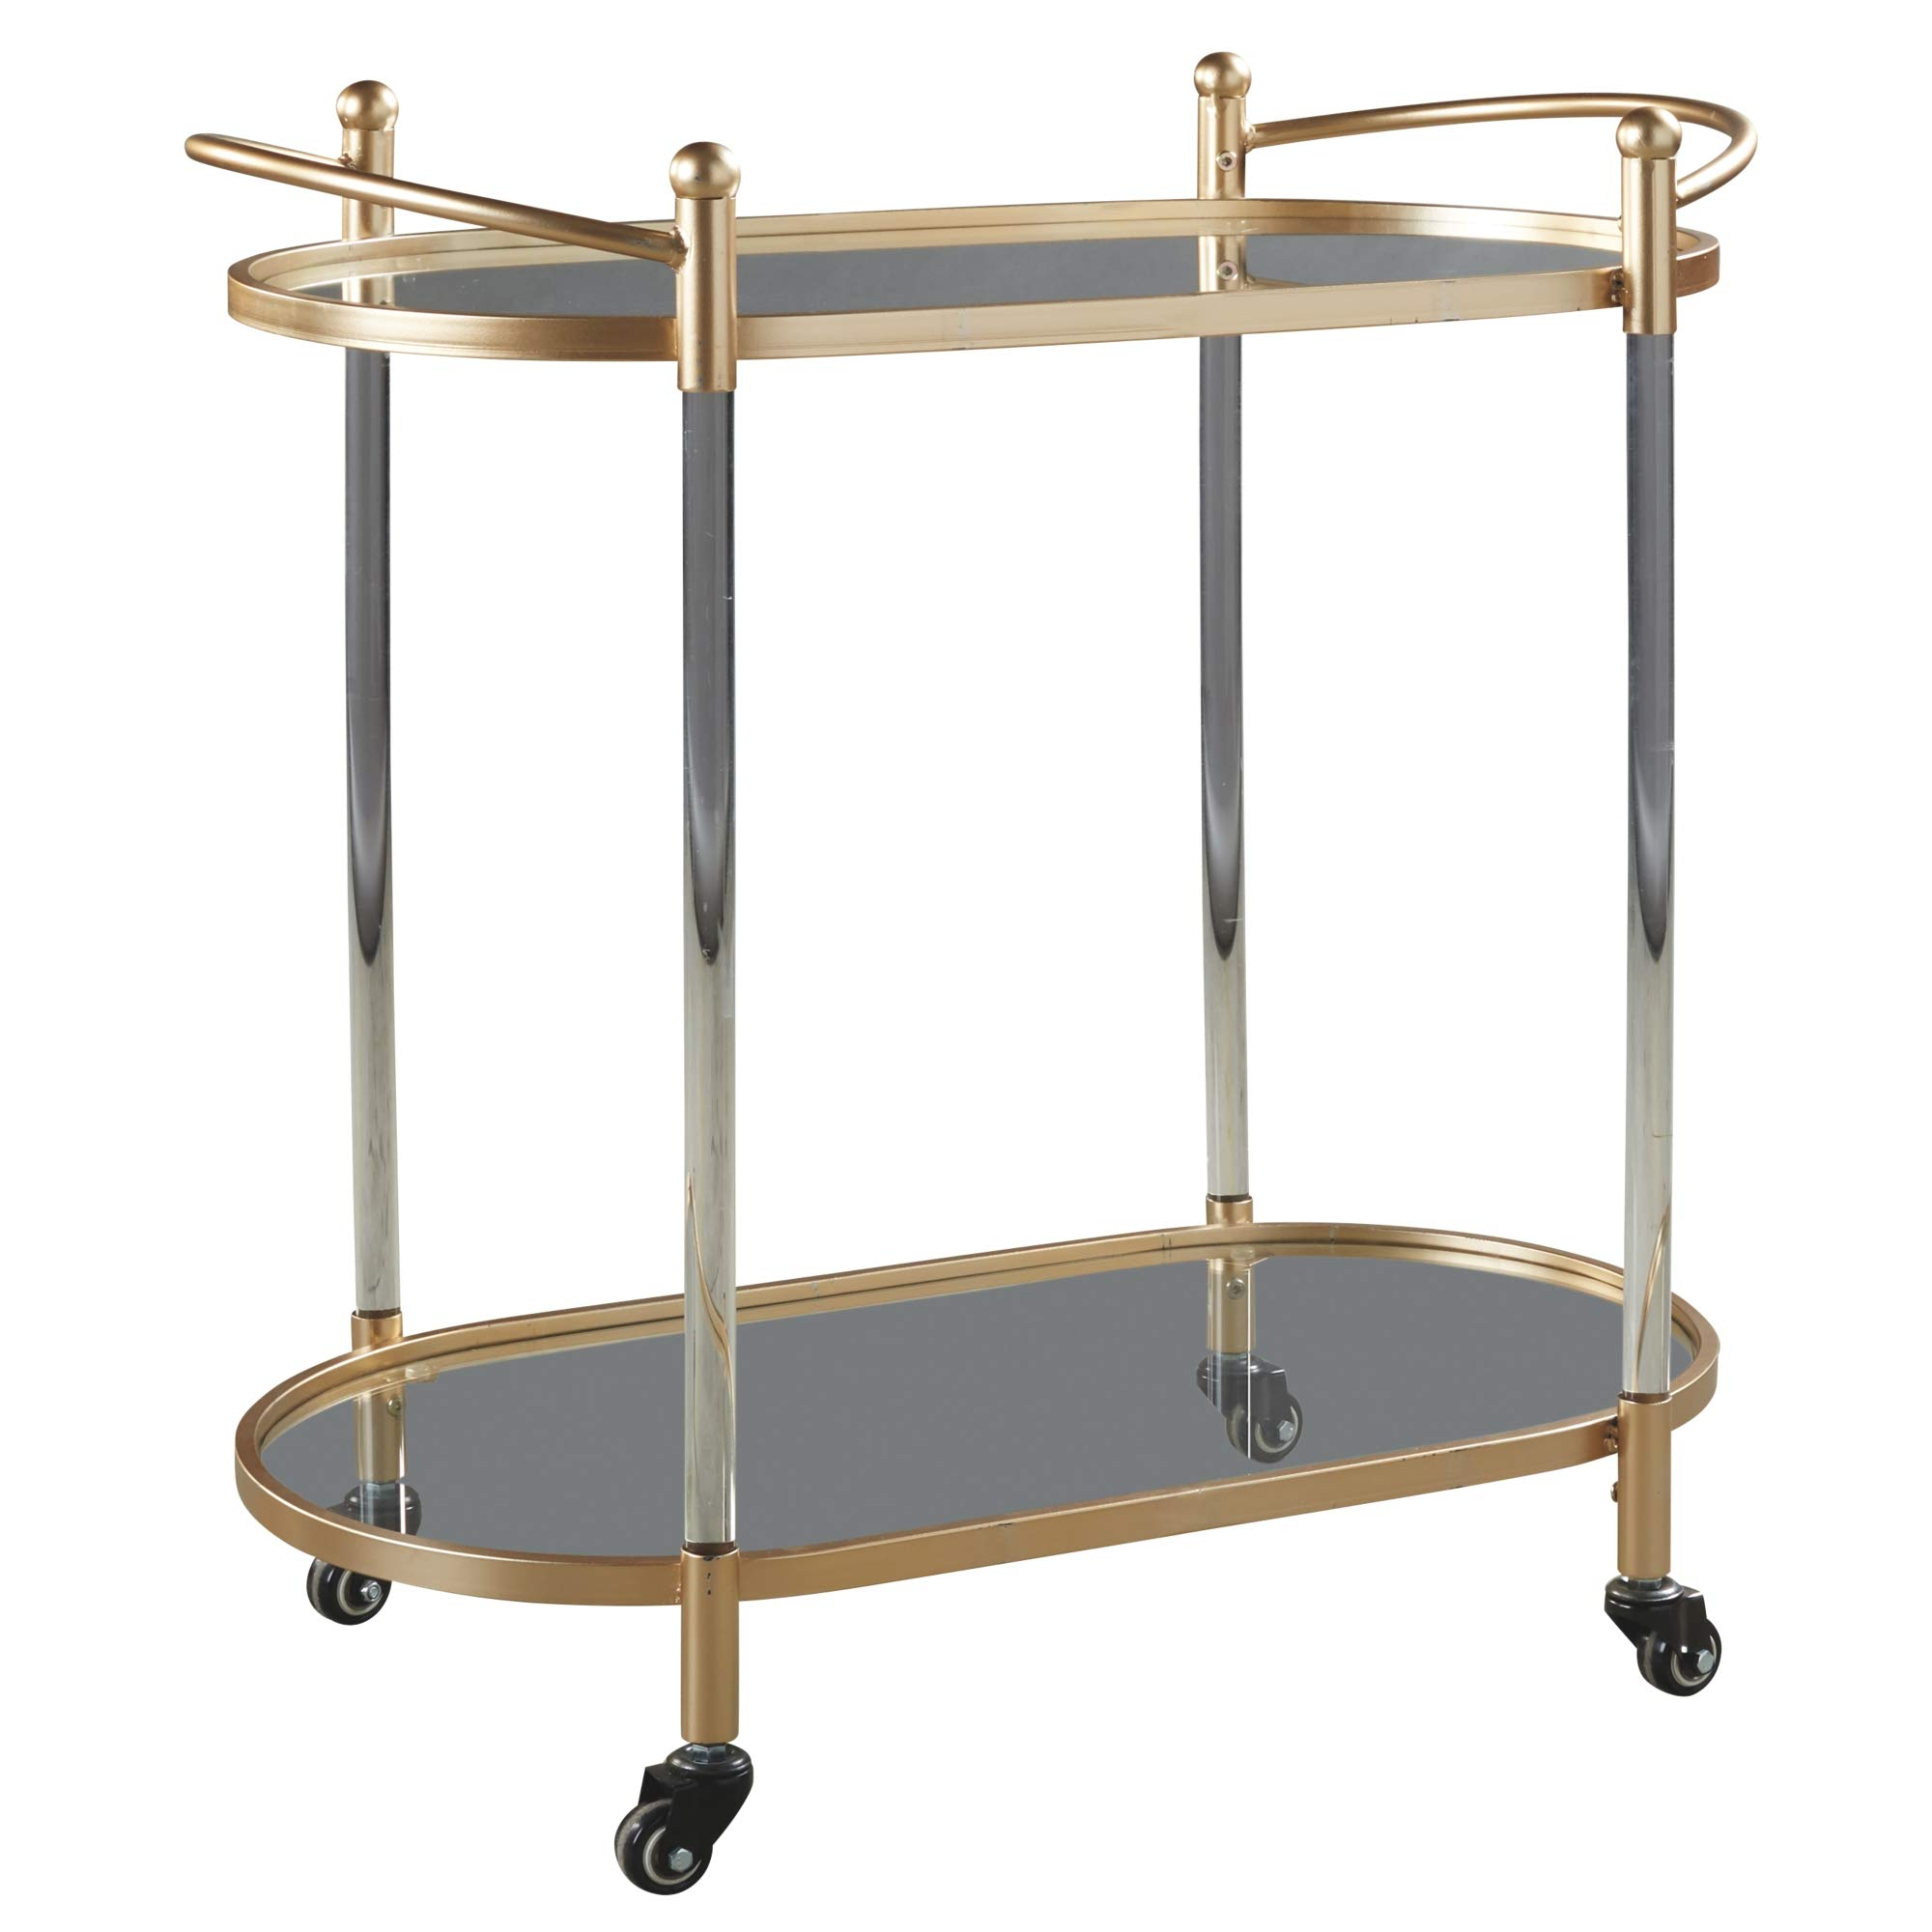 Ashley Furniture Signature Design - Cordland Bar Cart - Contemporary - Clear/Gold Finish by Signature Design by Ashley